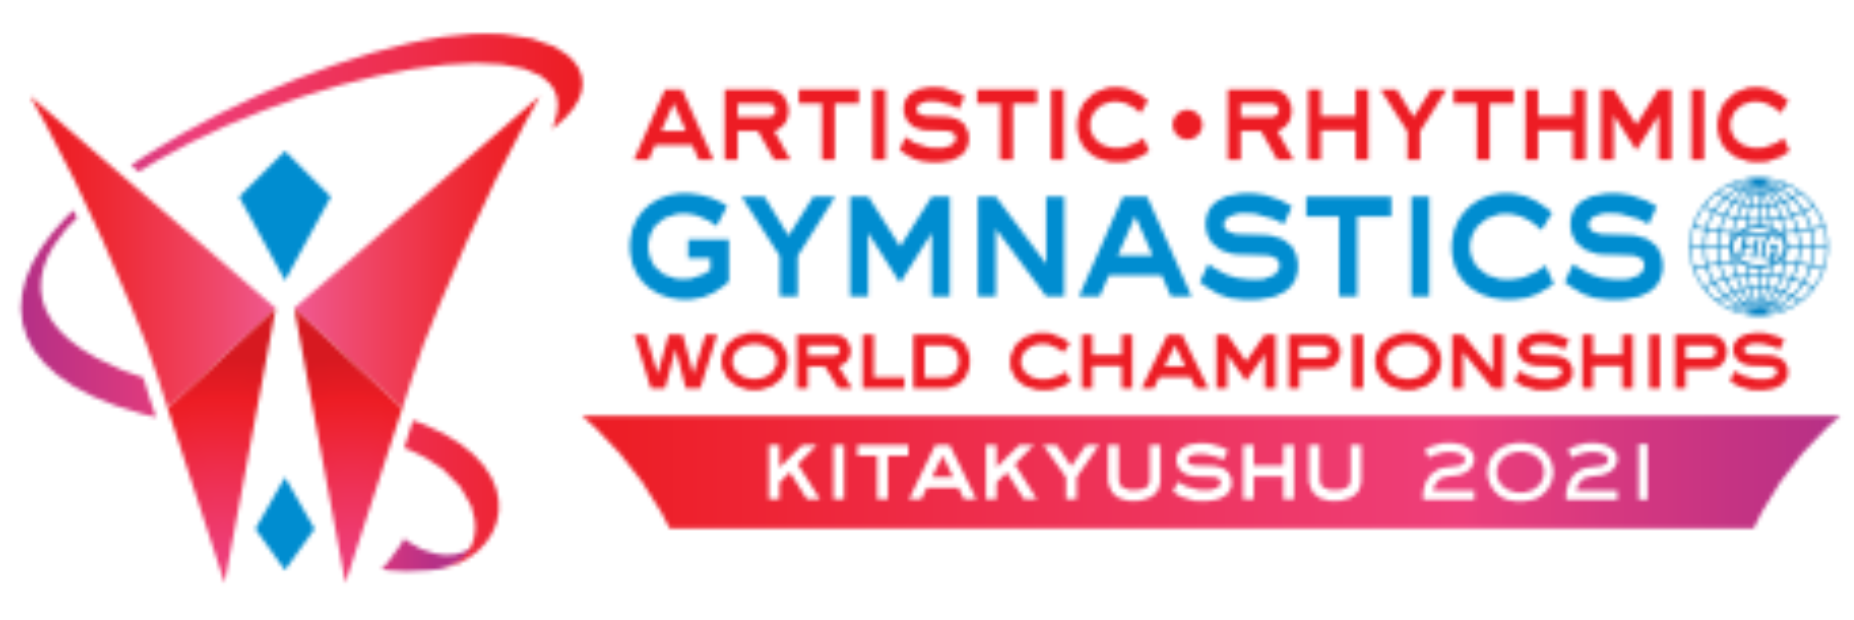 Exclusive: Japanese Government scraps COVID-19 quarantine for Artistic and Rhythmic Gymnastics World Championships